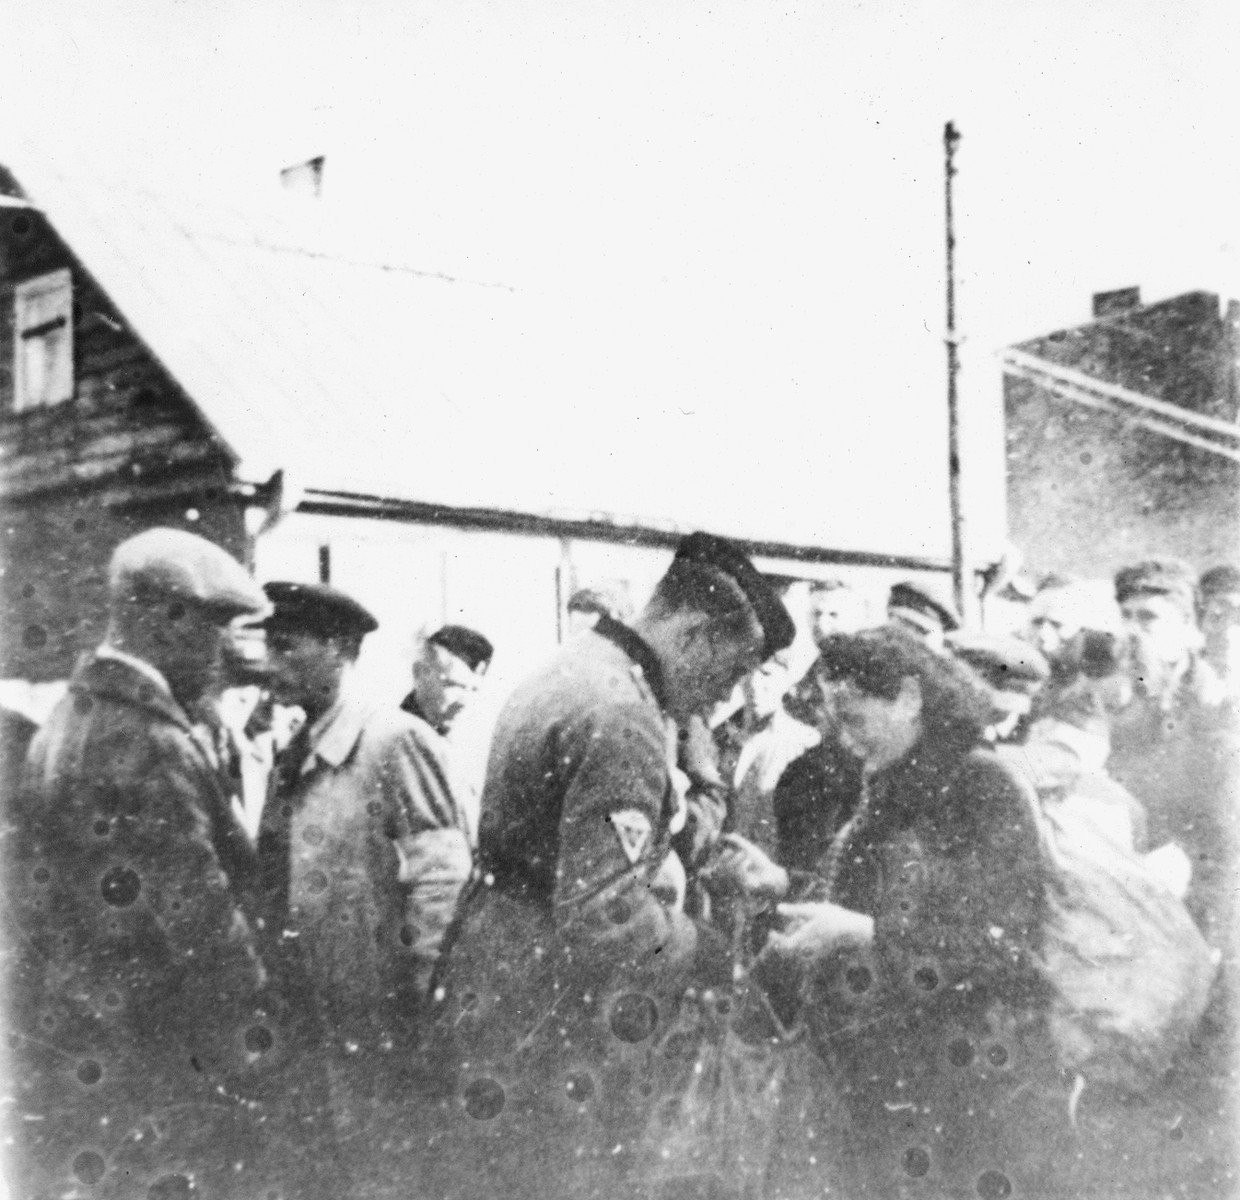 Kovno workers are searched by ghetto police at the Krisciukaicio Street entrance upon their return from forced labor outside the ghetto.